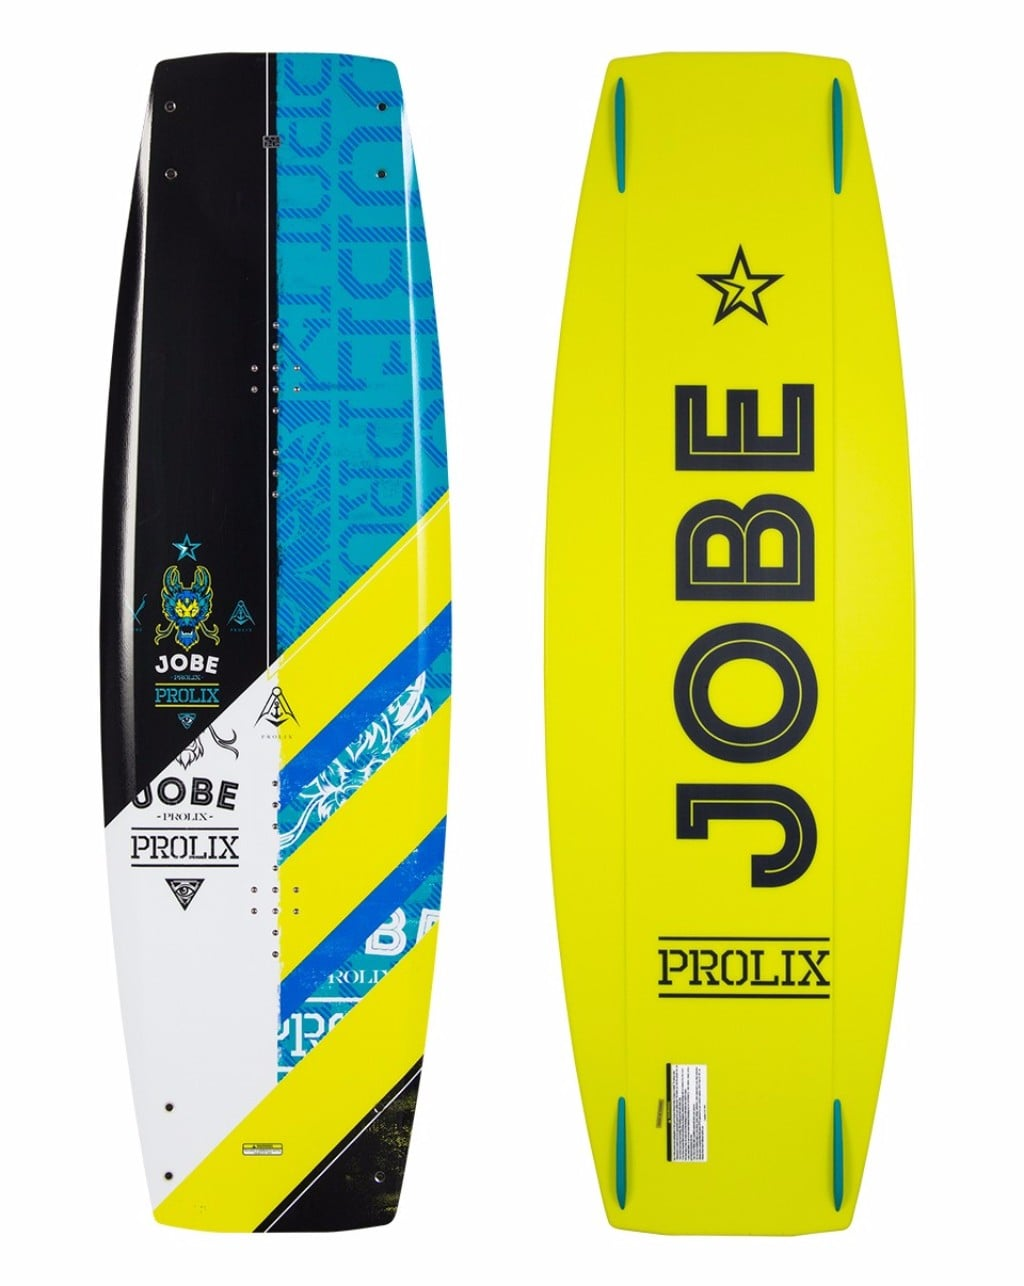 Jobe Prolix Boating Wakeboard Review